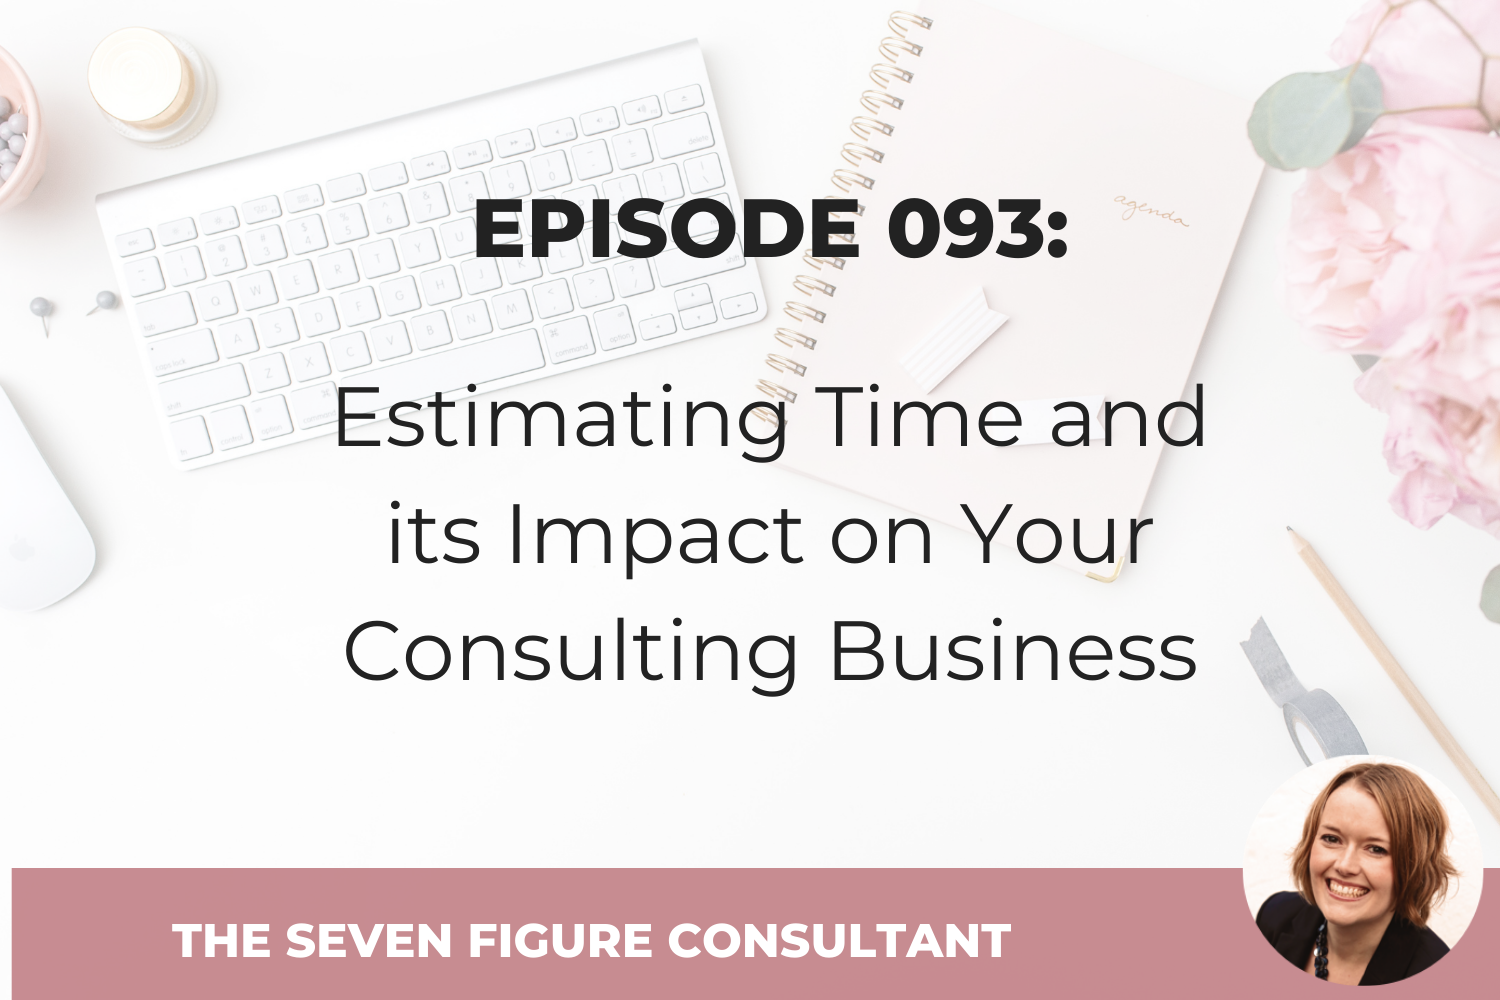 You are currently viewing Episode 093: Estimating Time and its Impact on Your Consulting Business